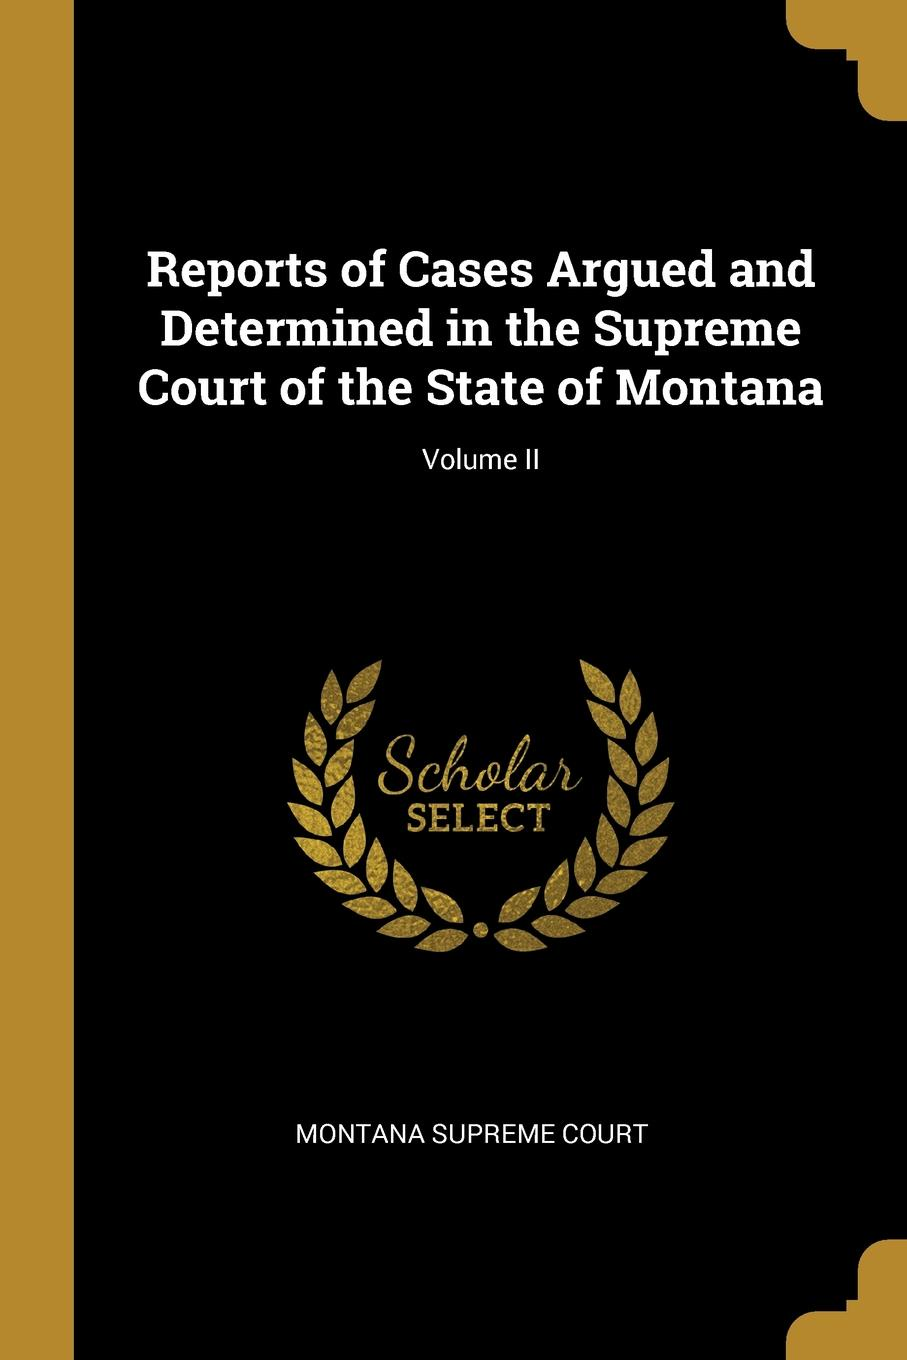 Montana Supreme Court Reports of Cases Argued and Determined in the Supreme Court of the State of Montana; Volume II